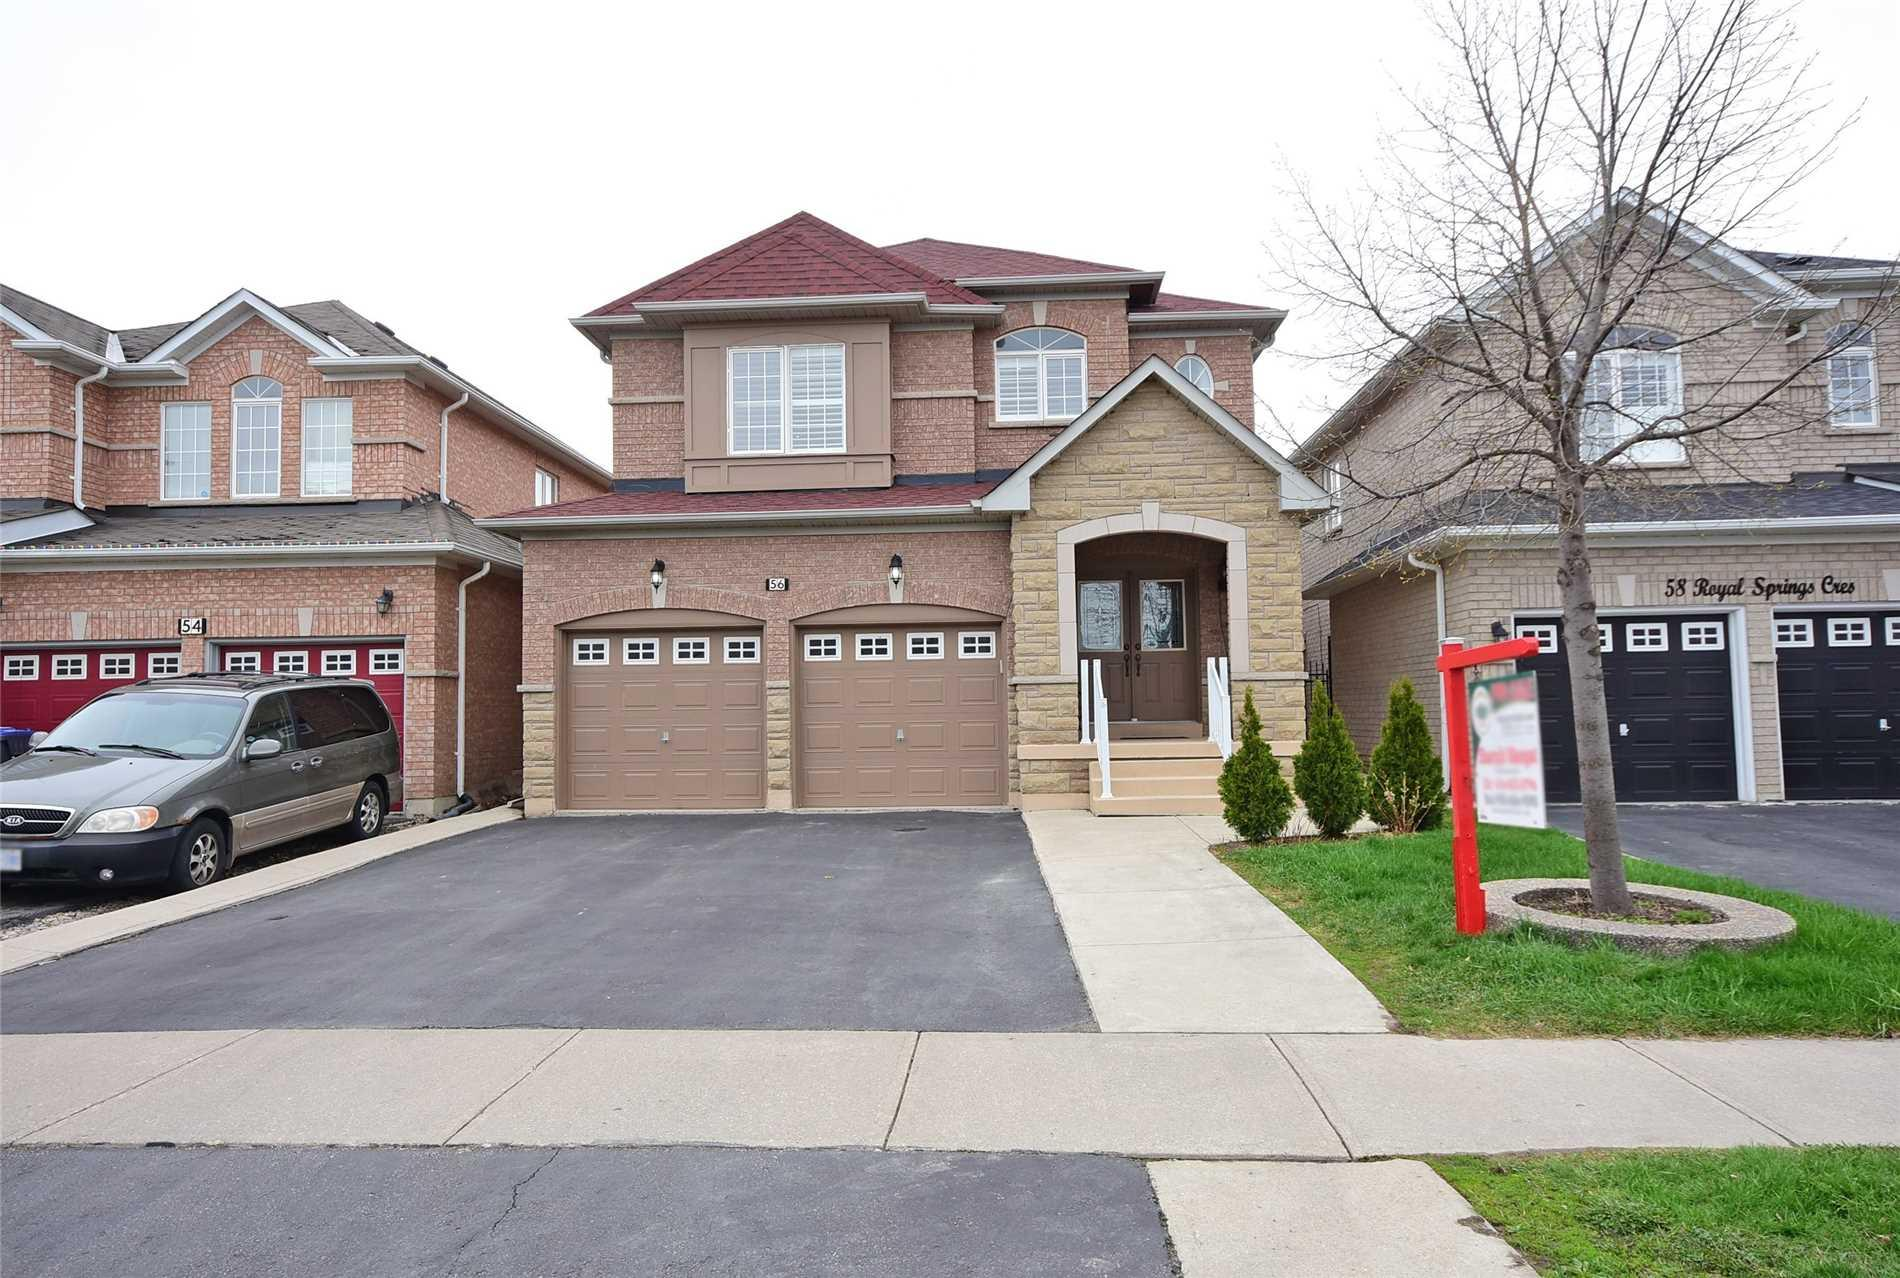 Magnificent 56 Royal Springs Cres Brampton W4444261 Zoocasa Beutiful Home Inspiration Ommitmahrainfo